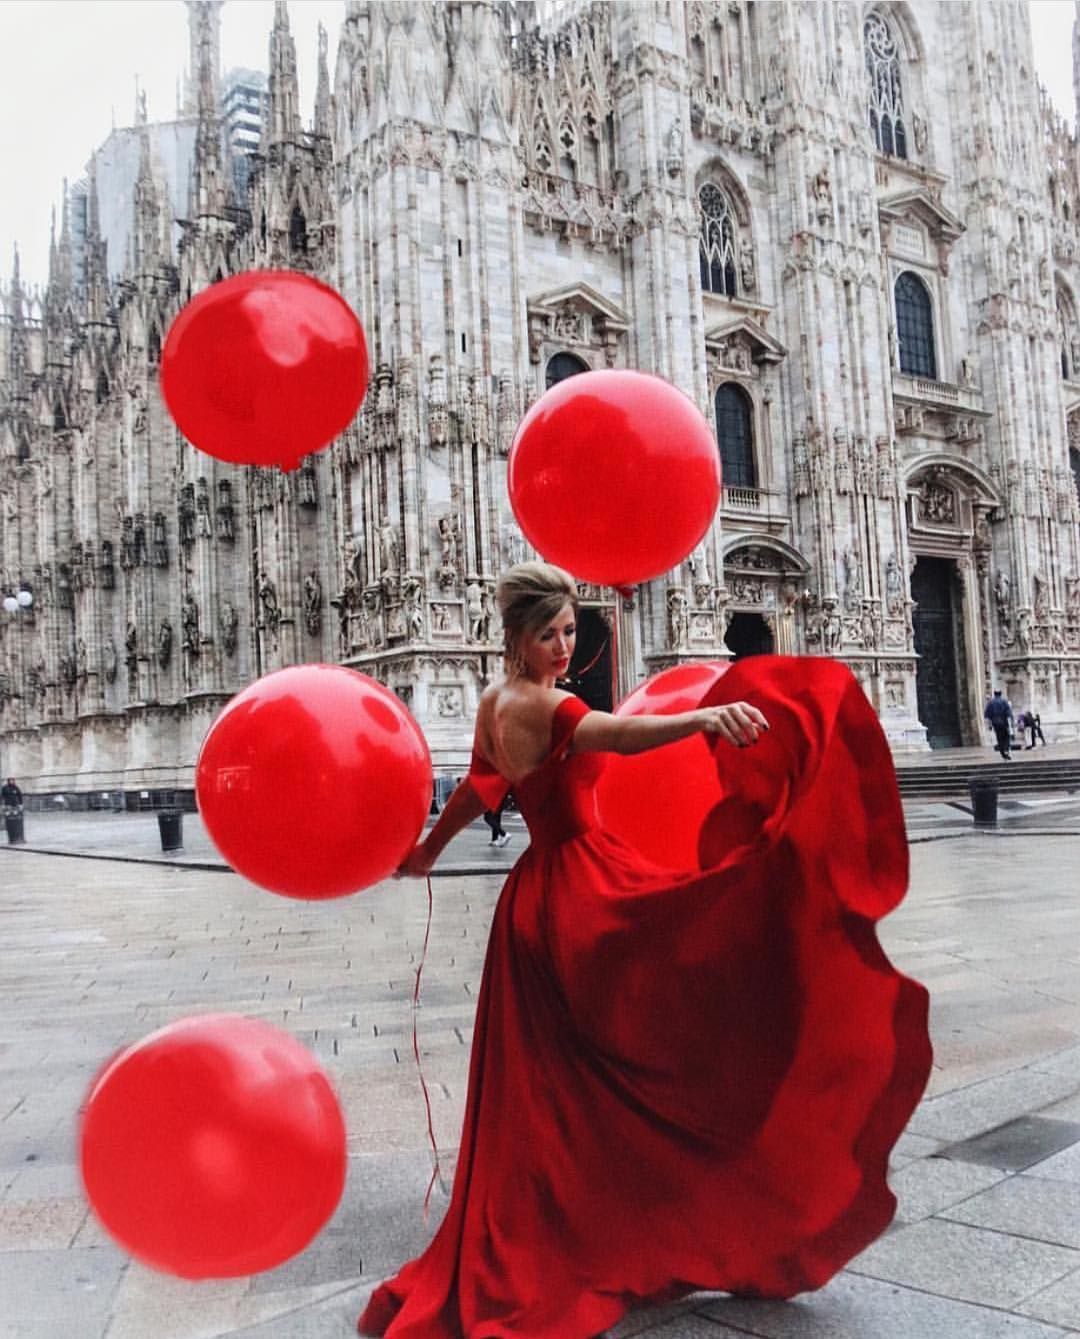 Red Maxi Gown For Prom Party: Best Design To Show Off Your Back 2020